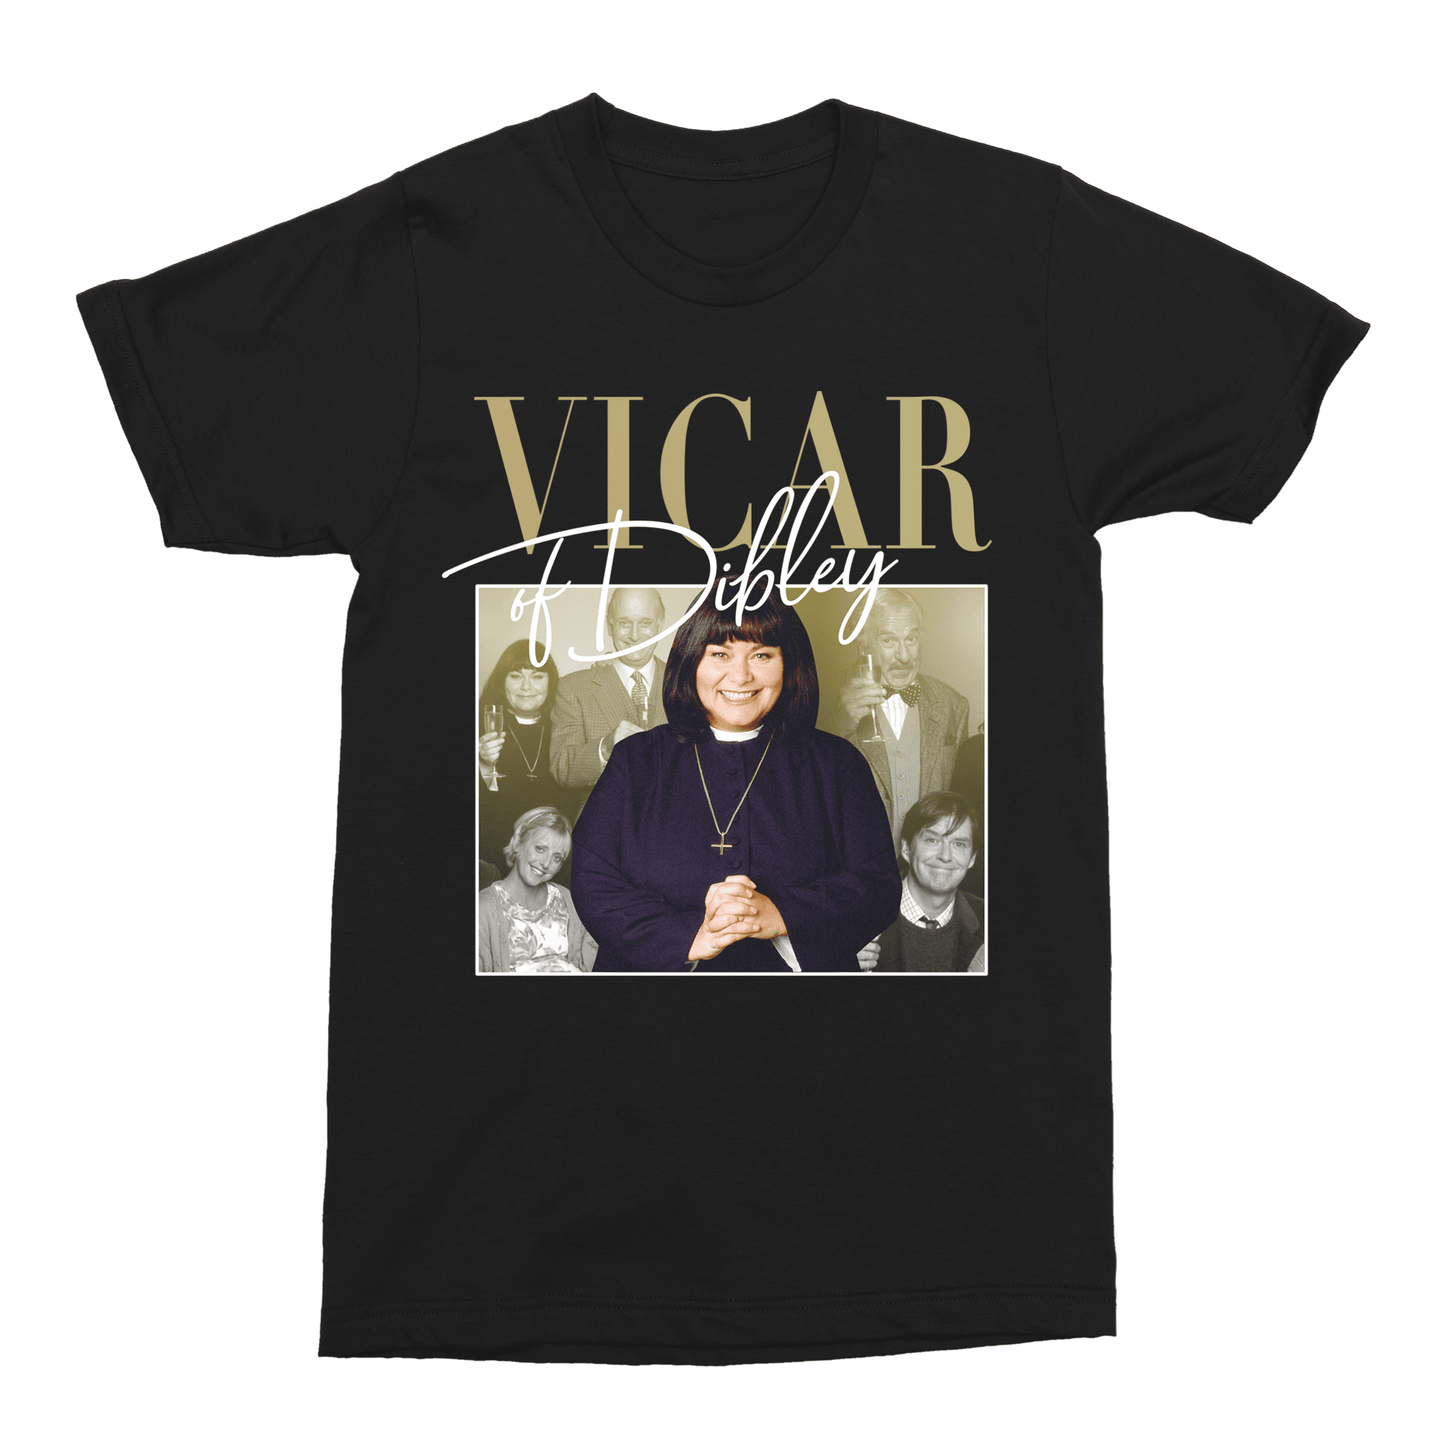 Vicar of Dibley 90s TV Show Unisex Vintage Throwback T-Shirt - Timeless Tees